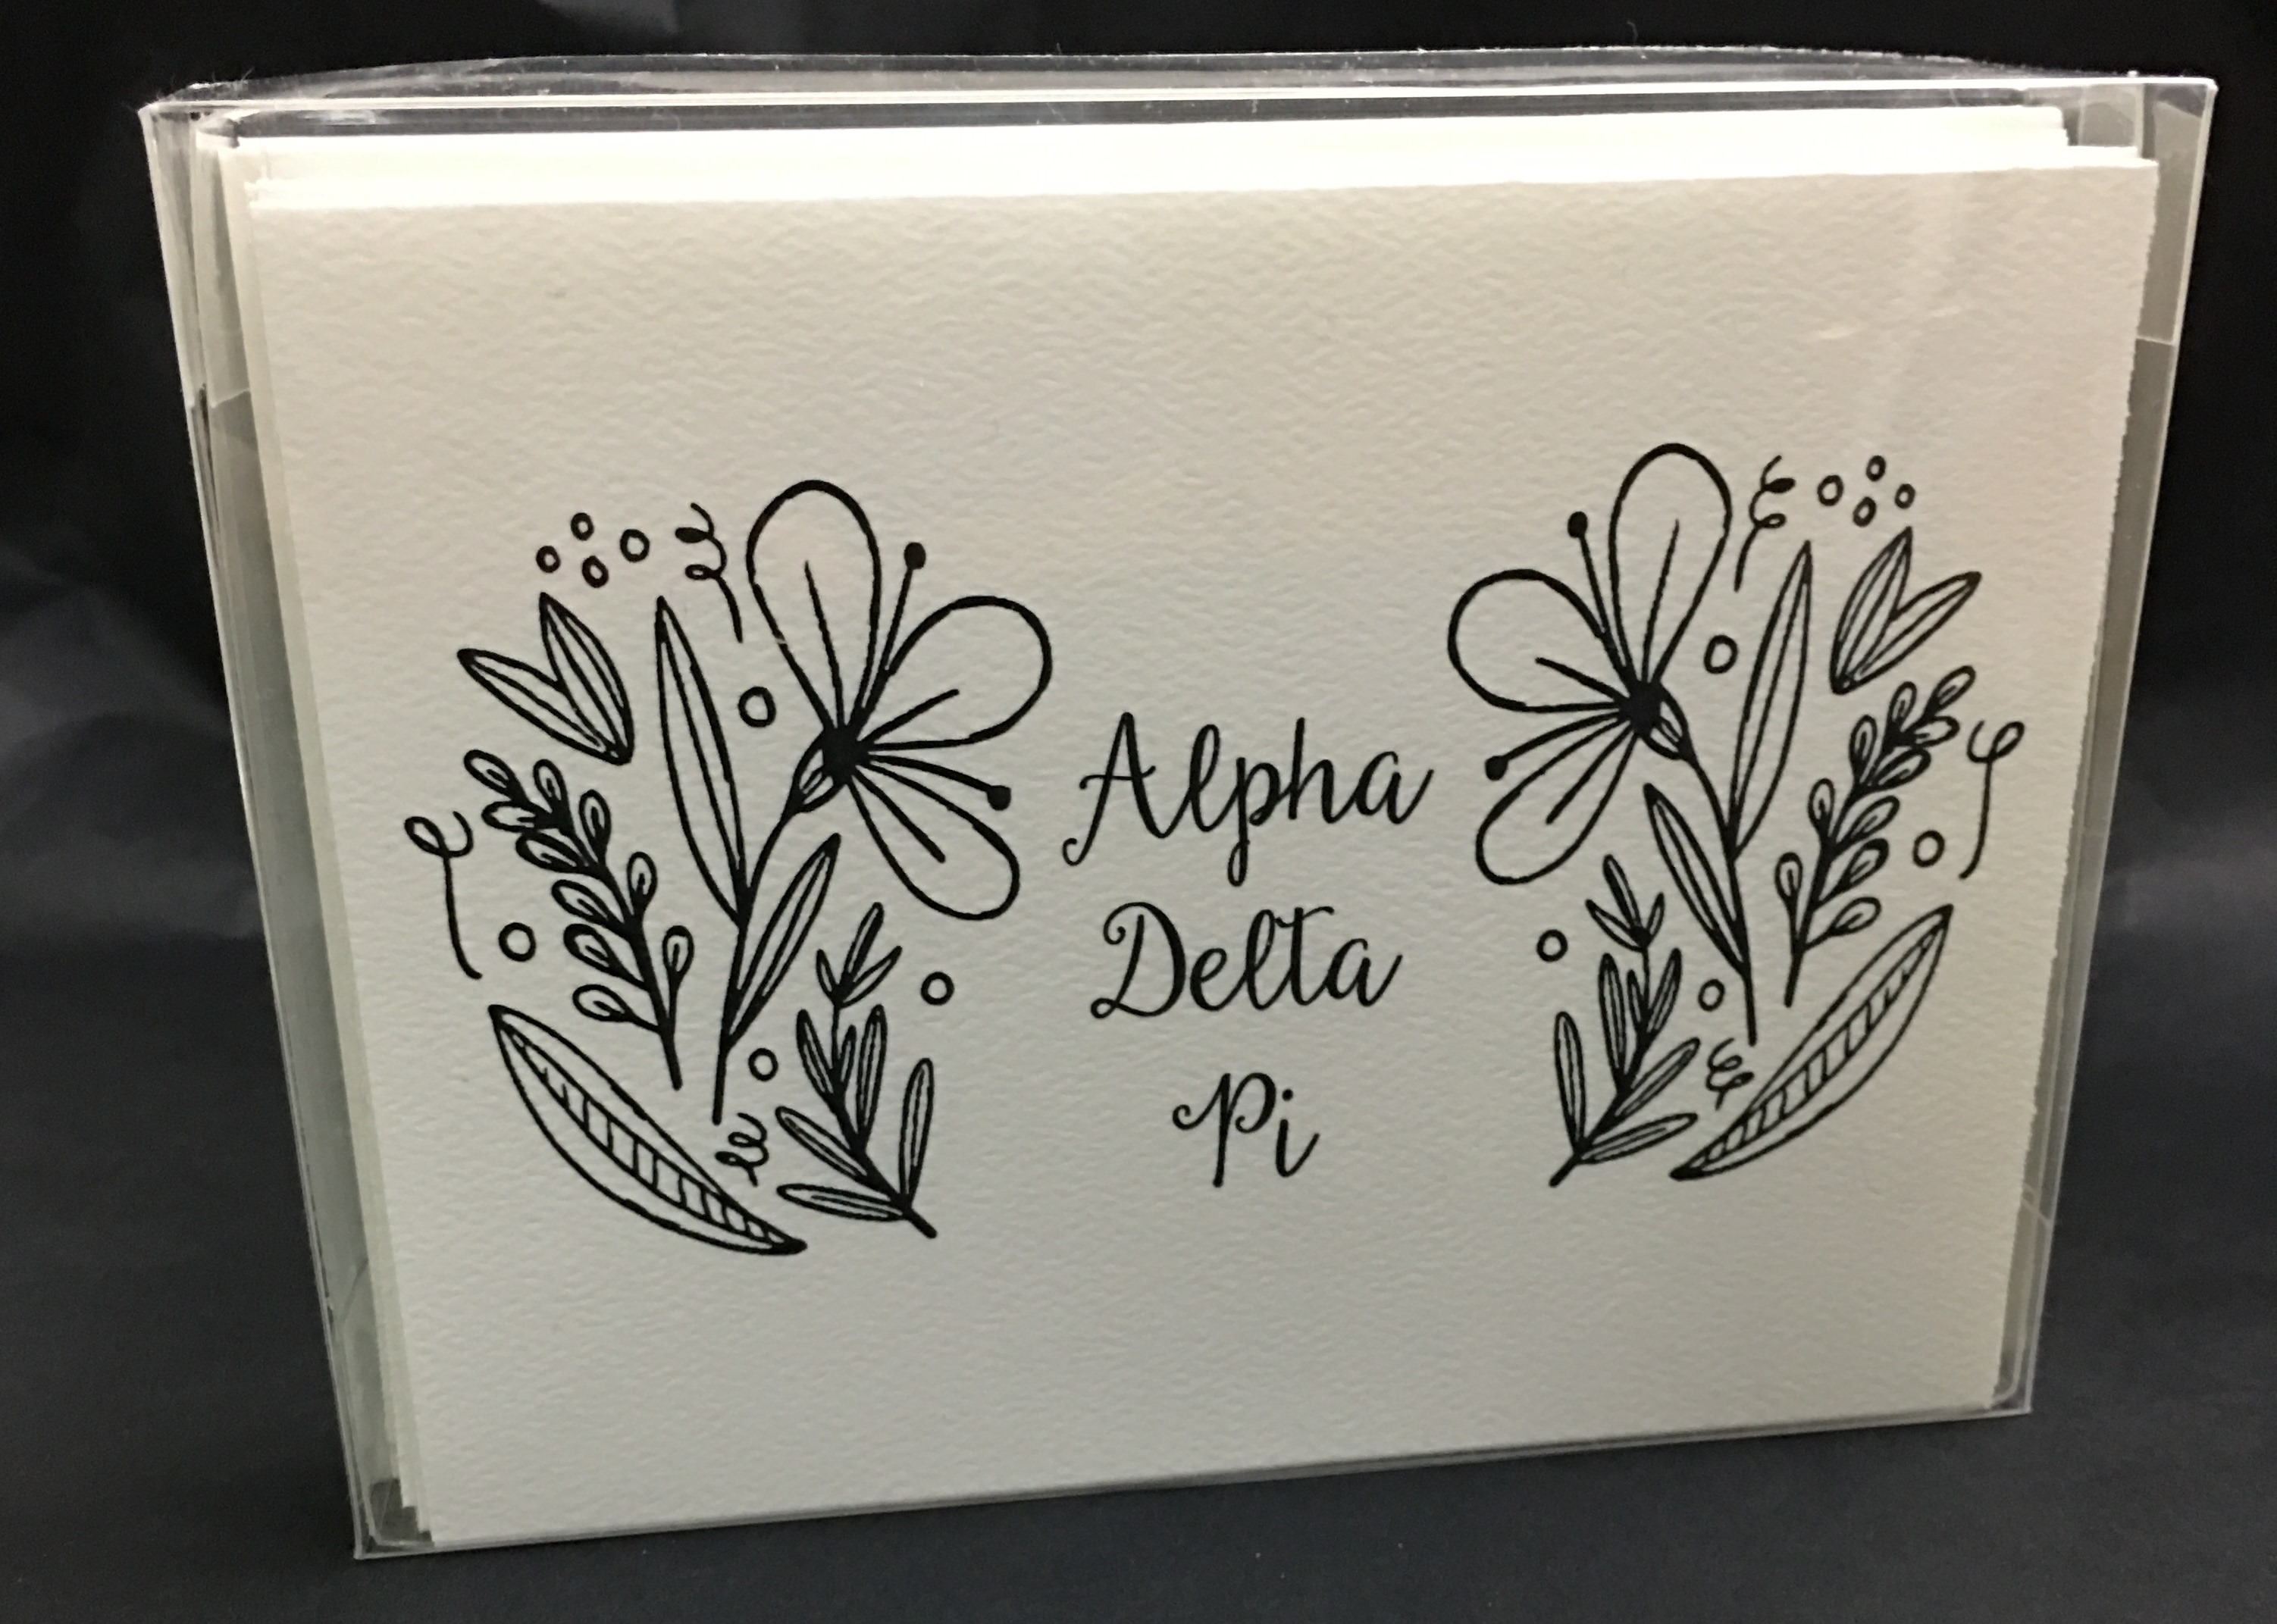 Double Flower Alpha Delta Pi Coloring Notecards